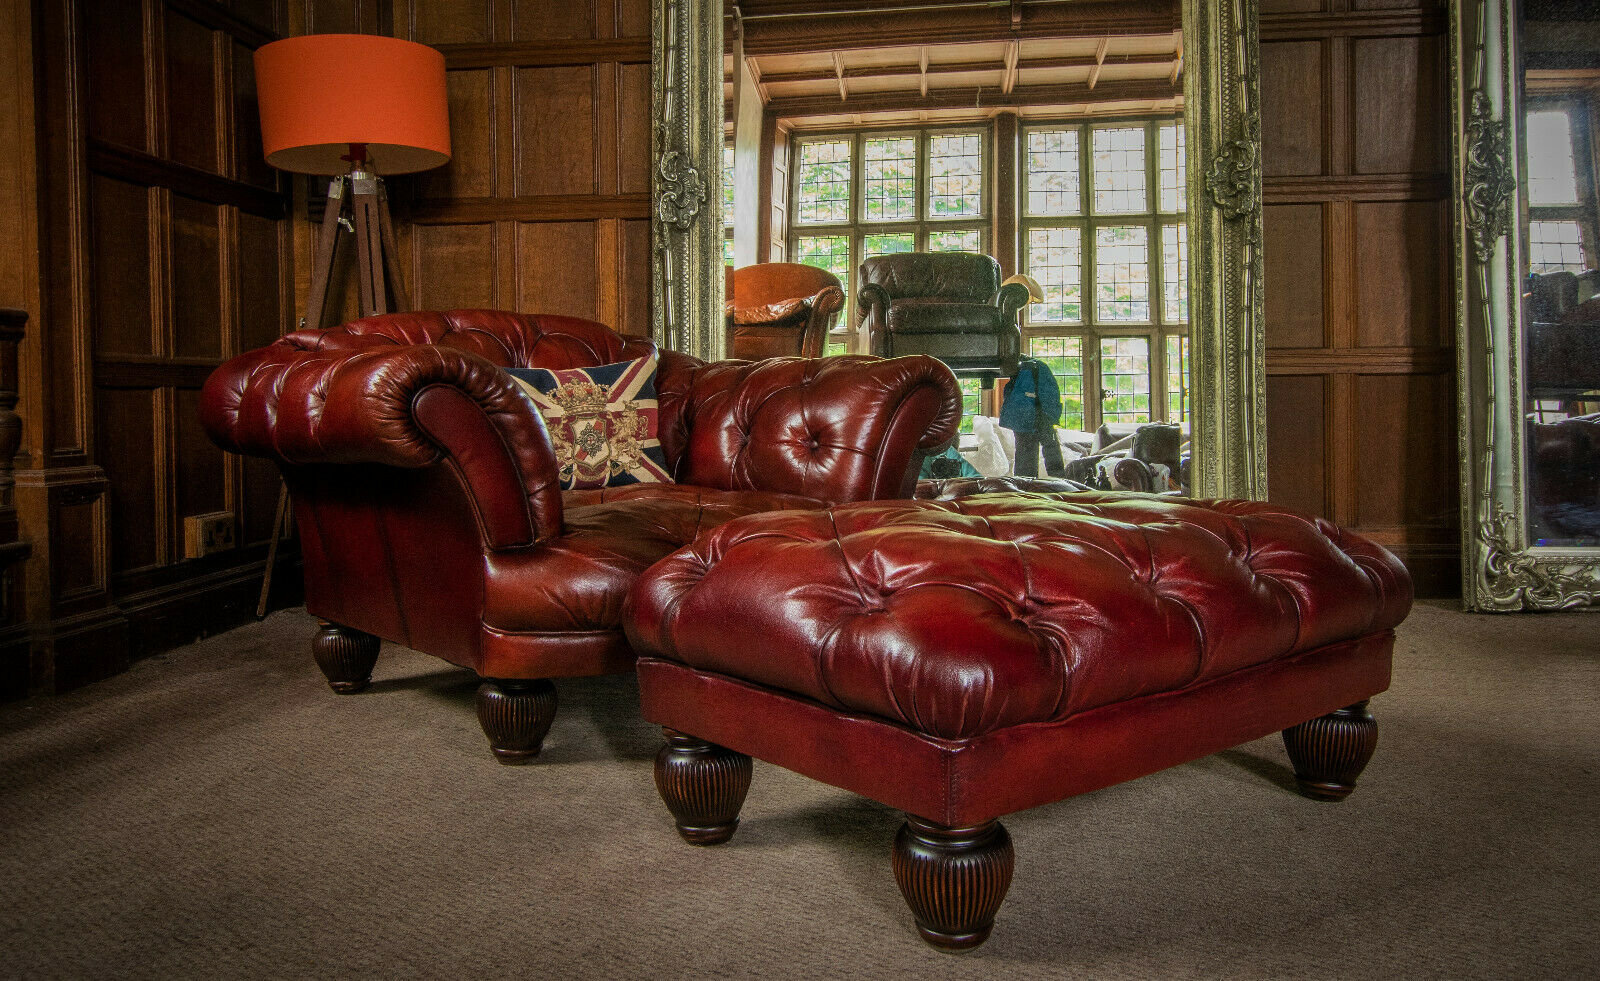 Picture of: F50 1276 Tetrad Oskar Grand Tour Oxblood Red Leather Chesterfield Club Chair Footstool Folio 50 Stourport Antique Furniture